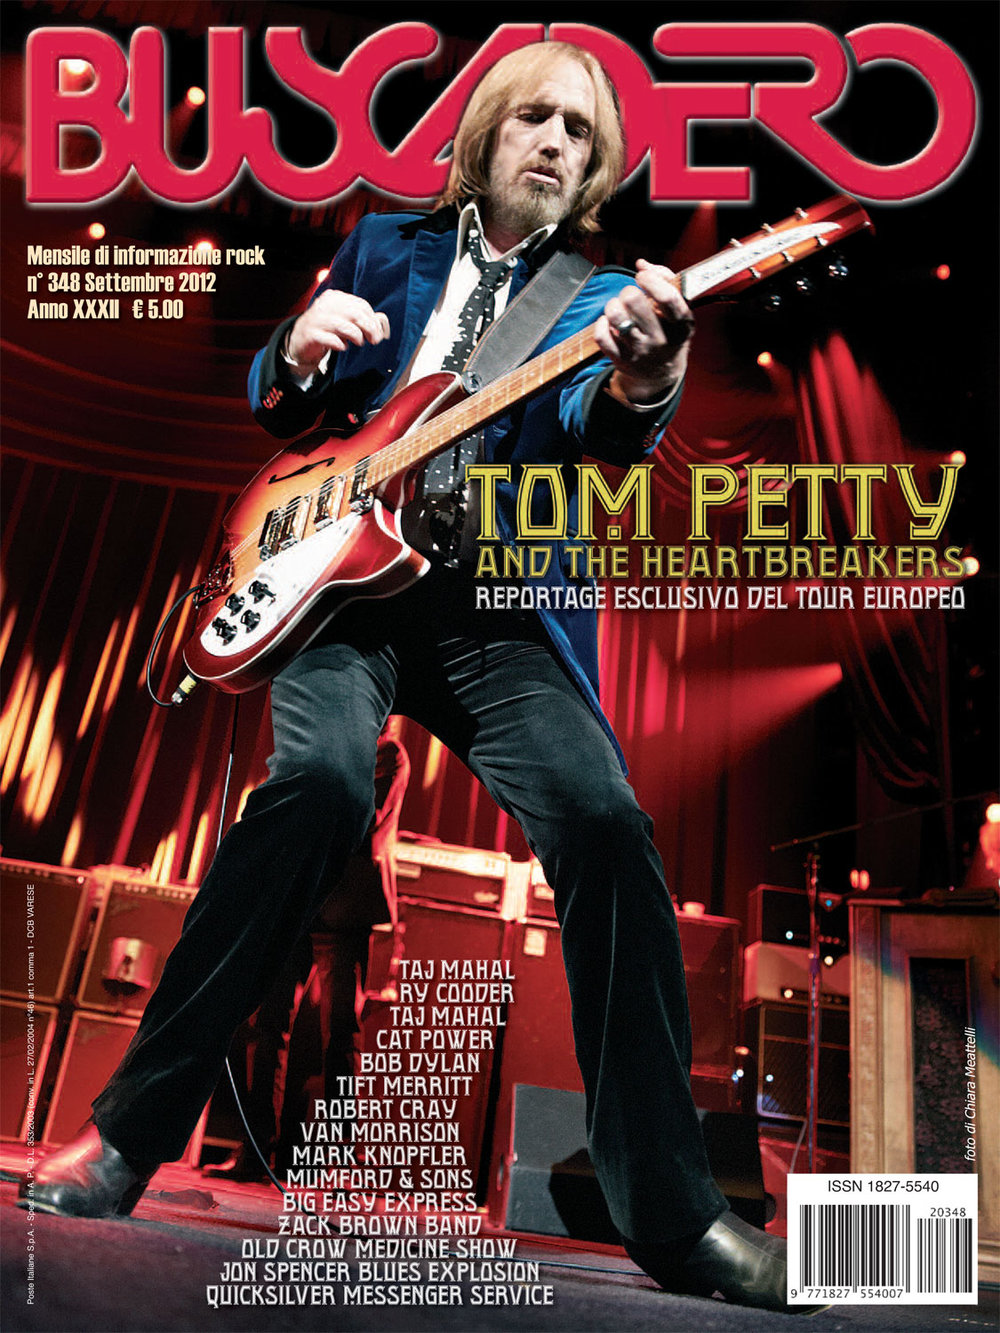 Buscadero: Tom Petty cover photo